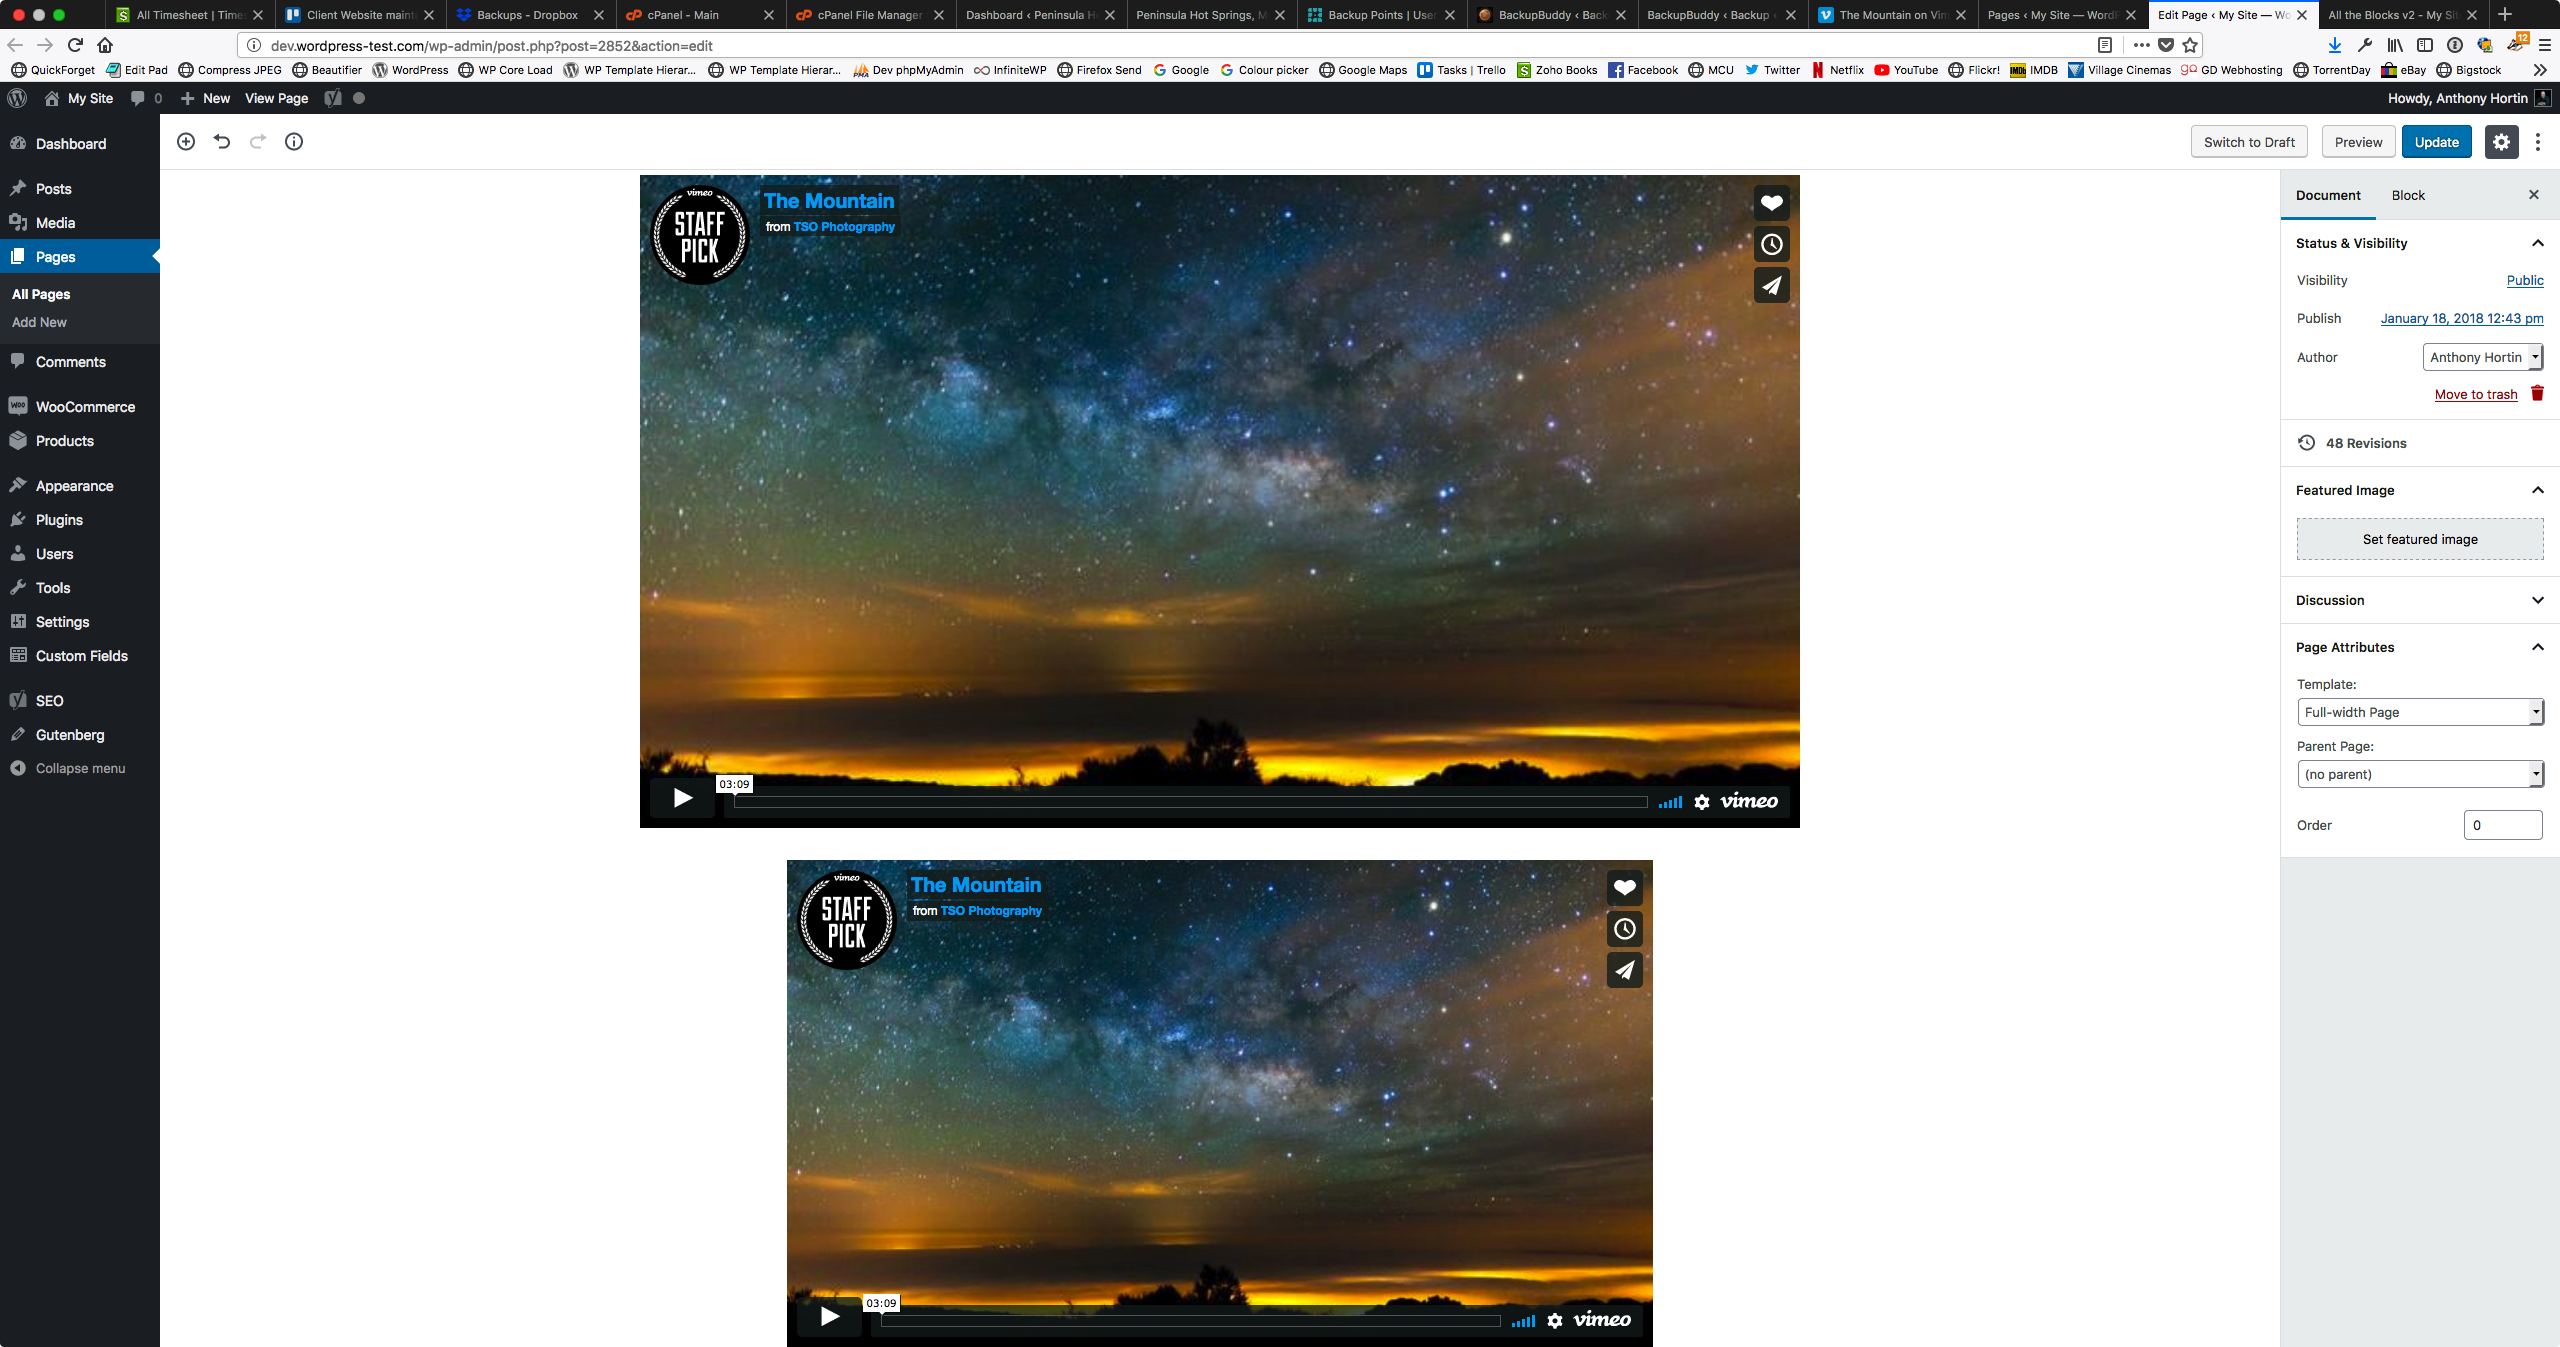 Can't style embedded videos properly due to inline width